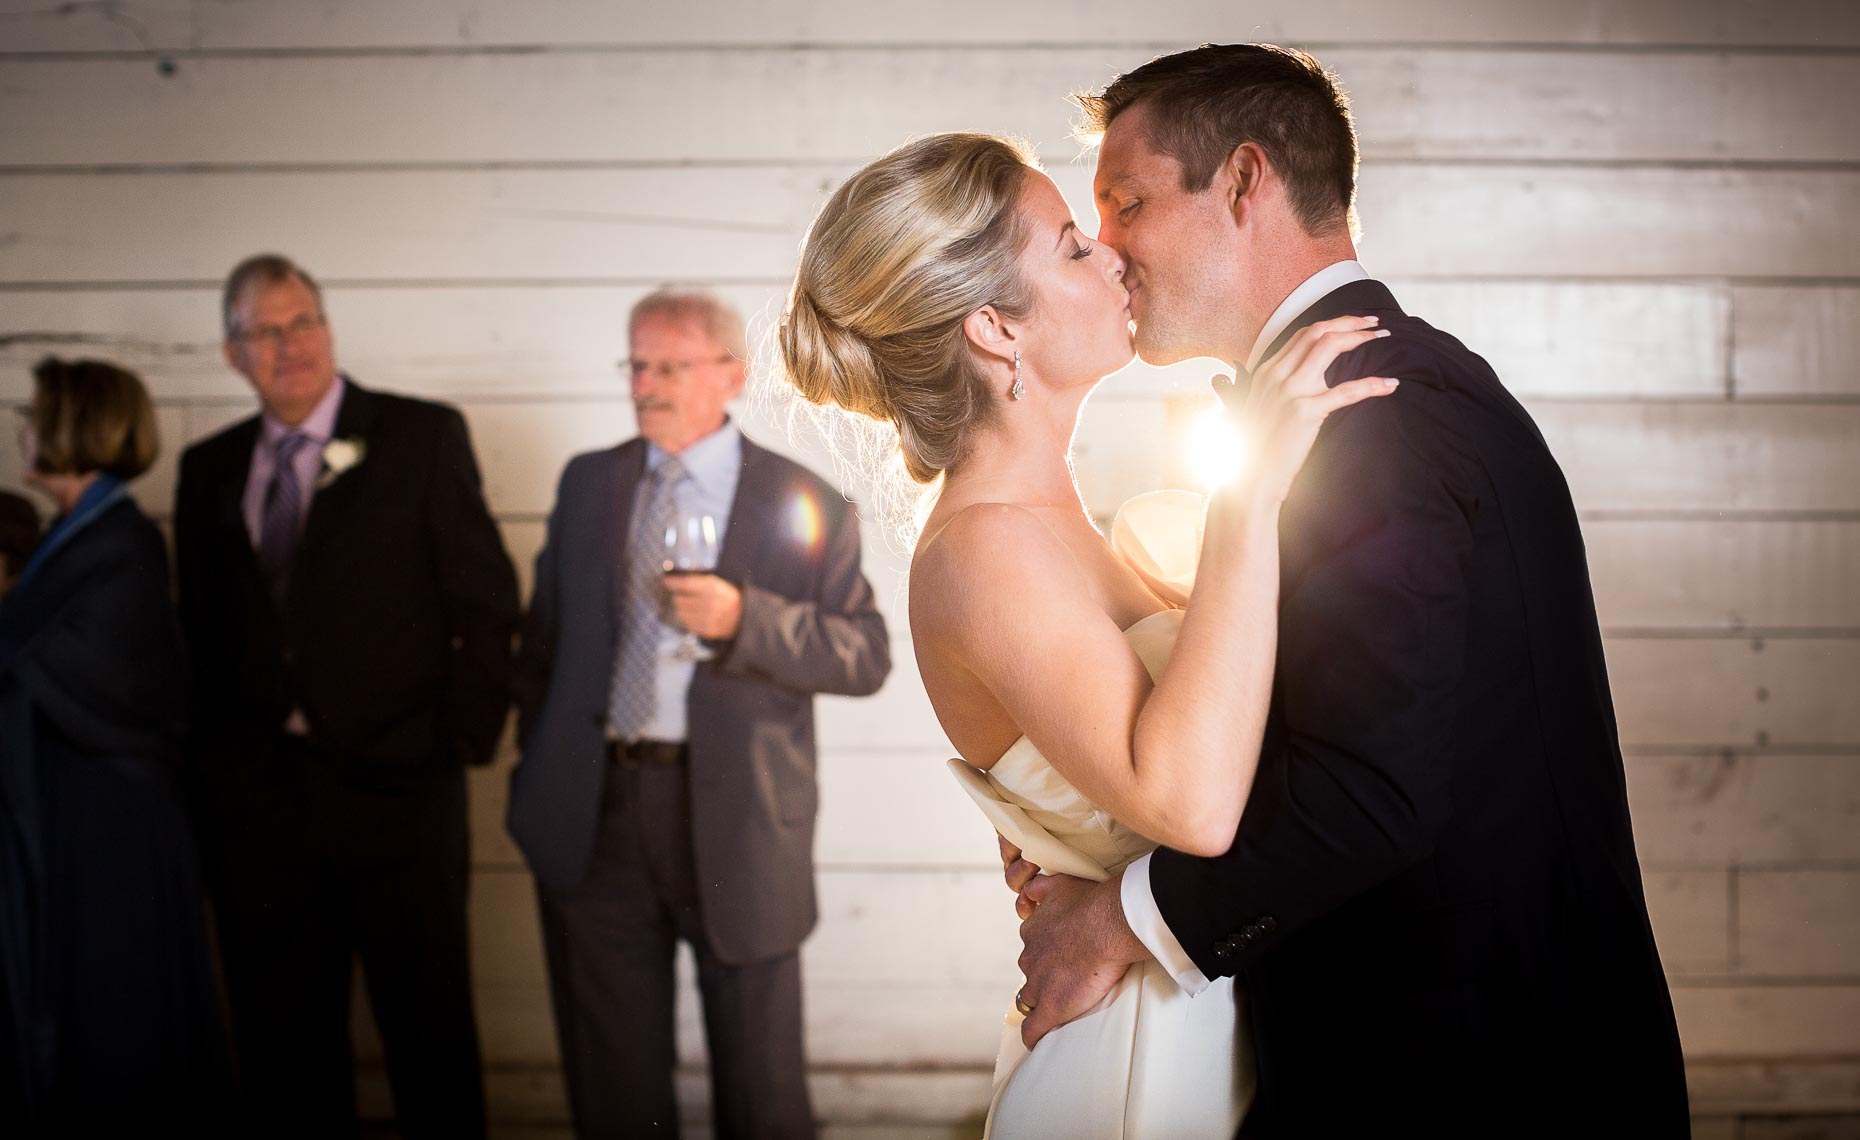 Bride and groom kiss after first dance in Pemberton vintage barn wedding.